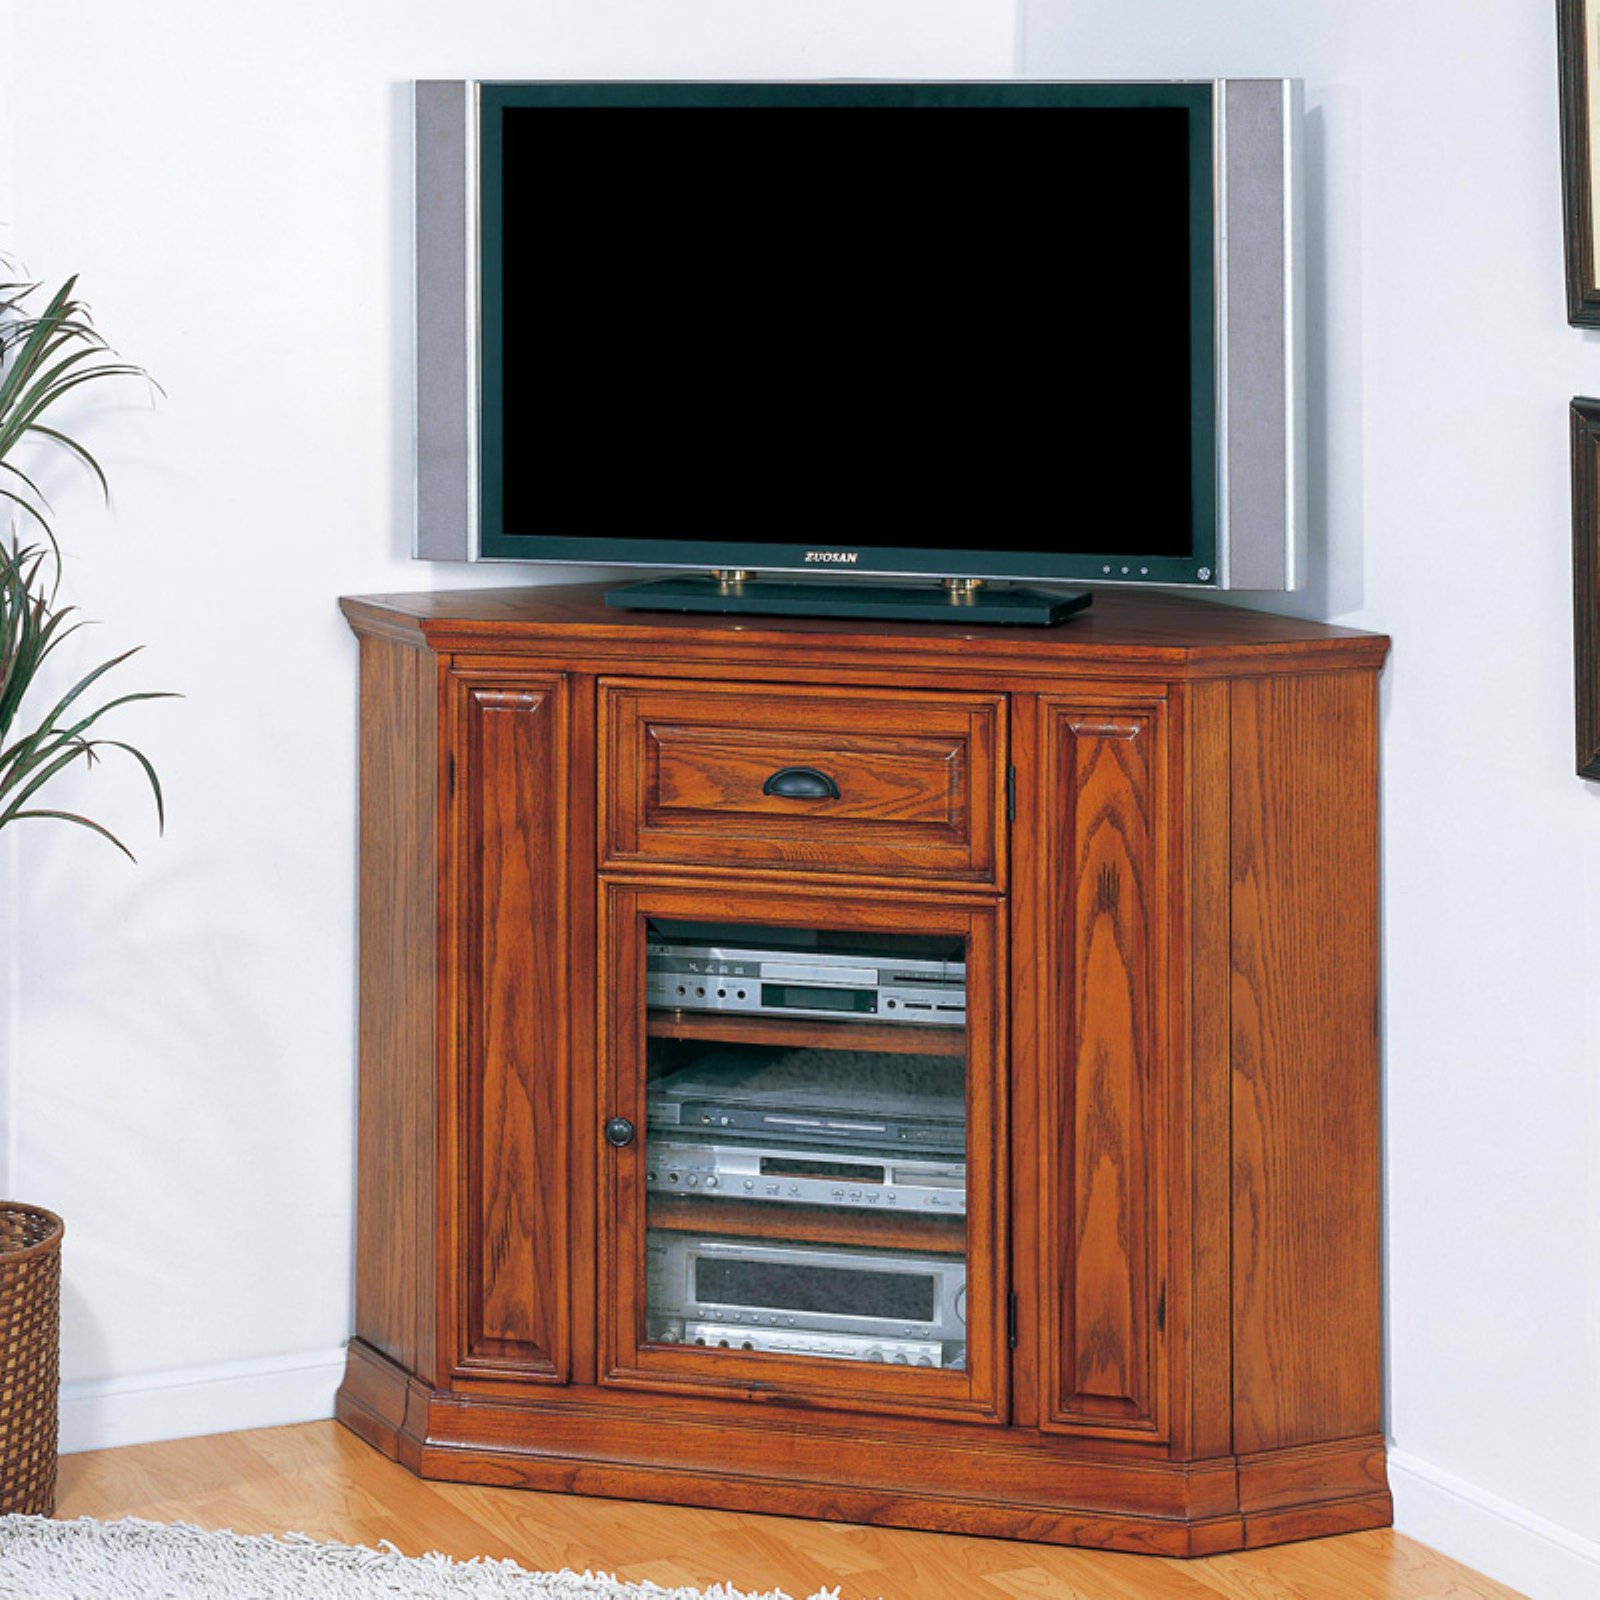 Leick 82232 Riley Holliday Boulder Creek 46 in. Corner TV Console by Leick Furniture